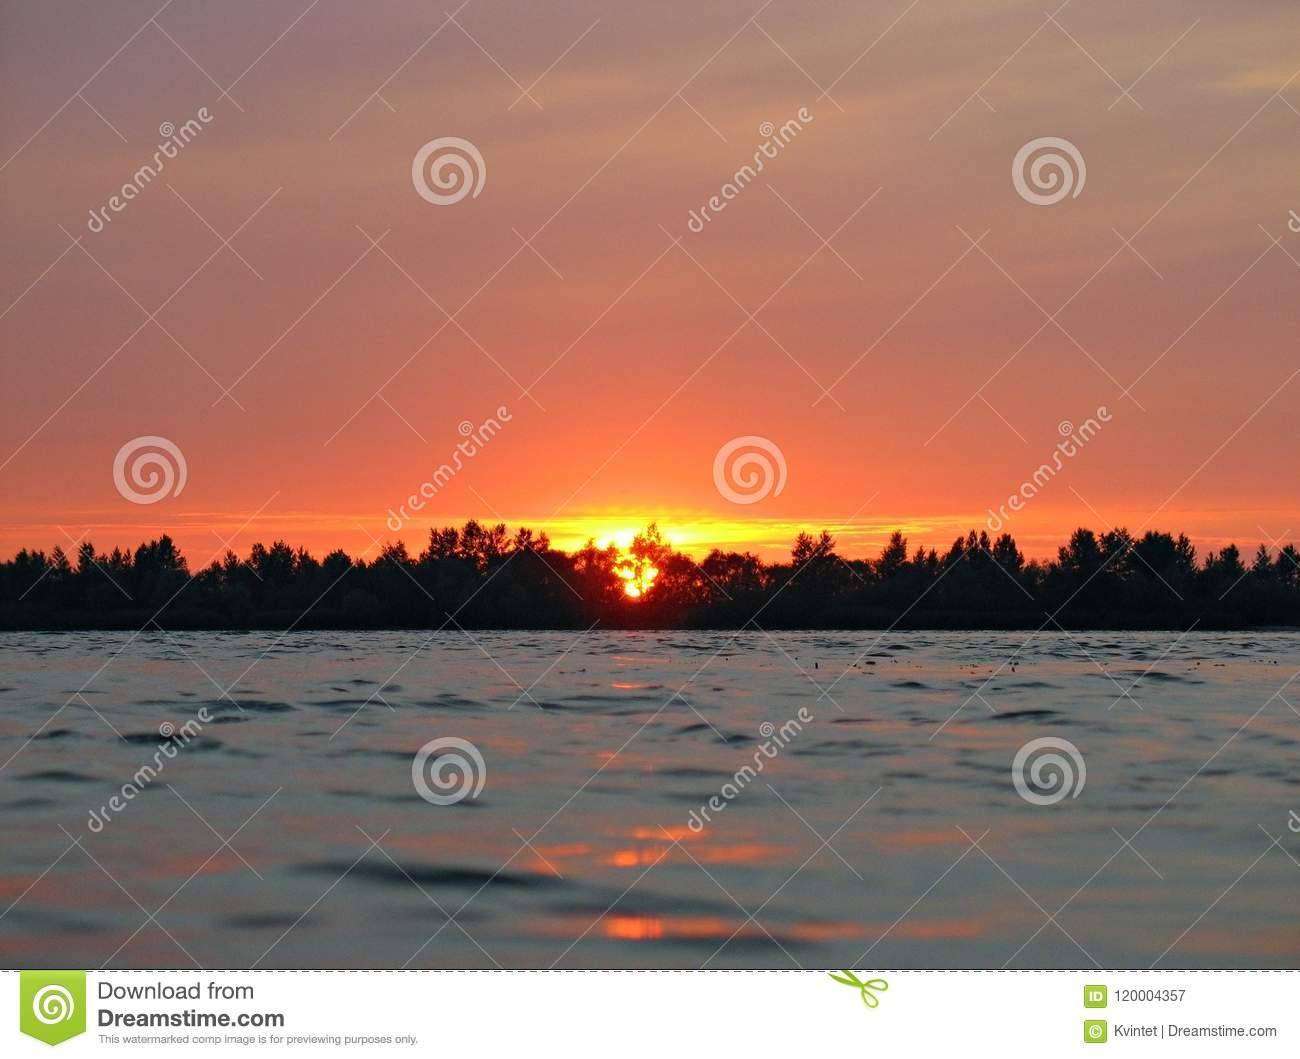 Background Of Red Sunset At Water With Skyline Of Trees Stock Image Image Of Natural Scenic 120004357